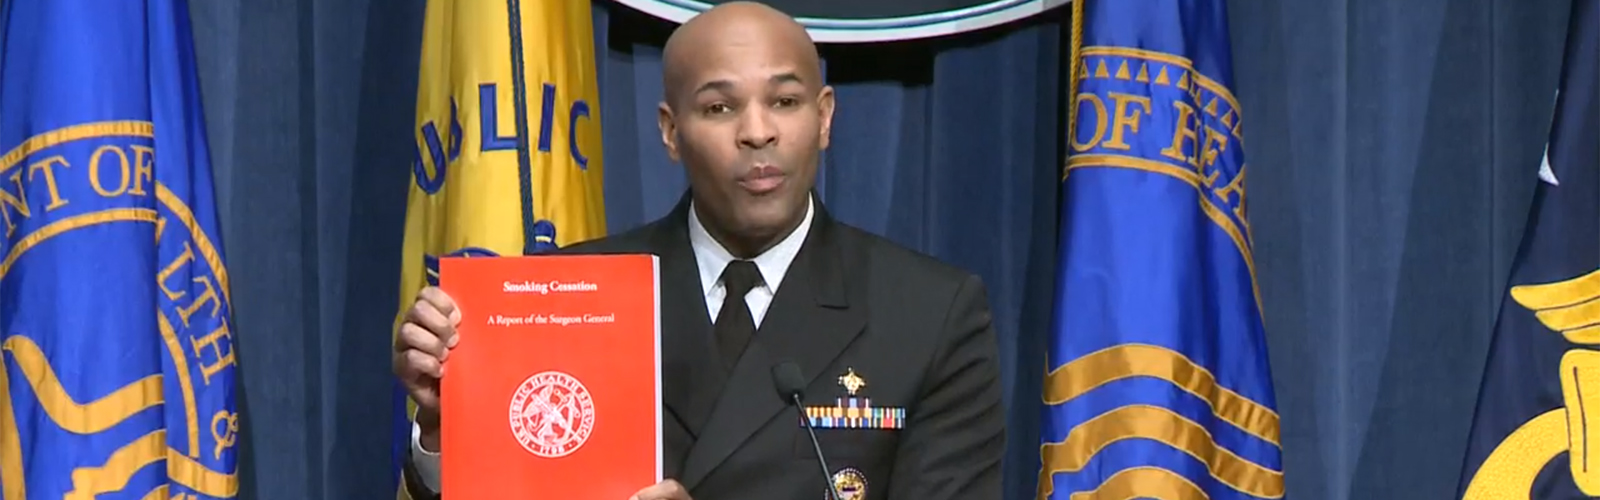 US Surgeon General Dr. Jerome Adams shows his new report